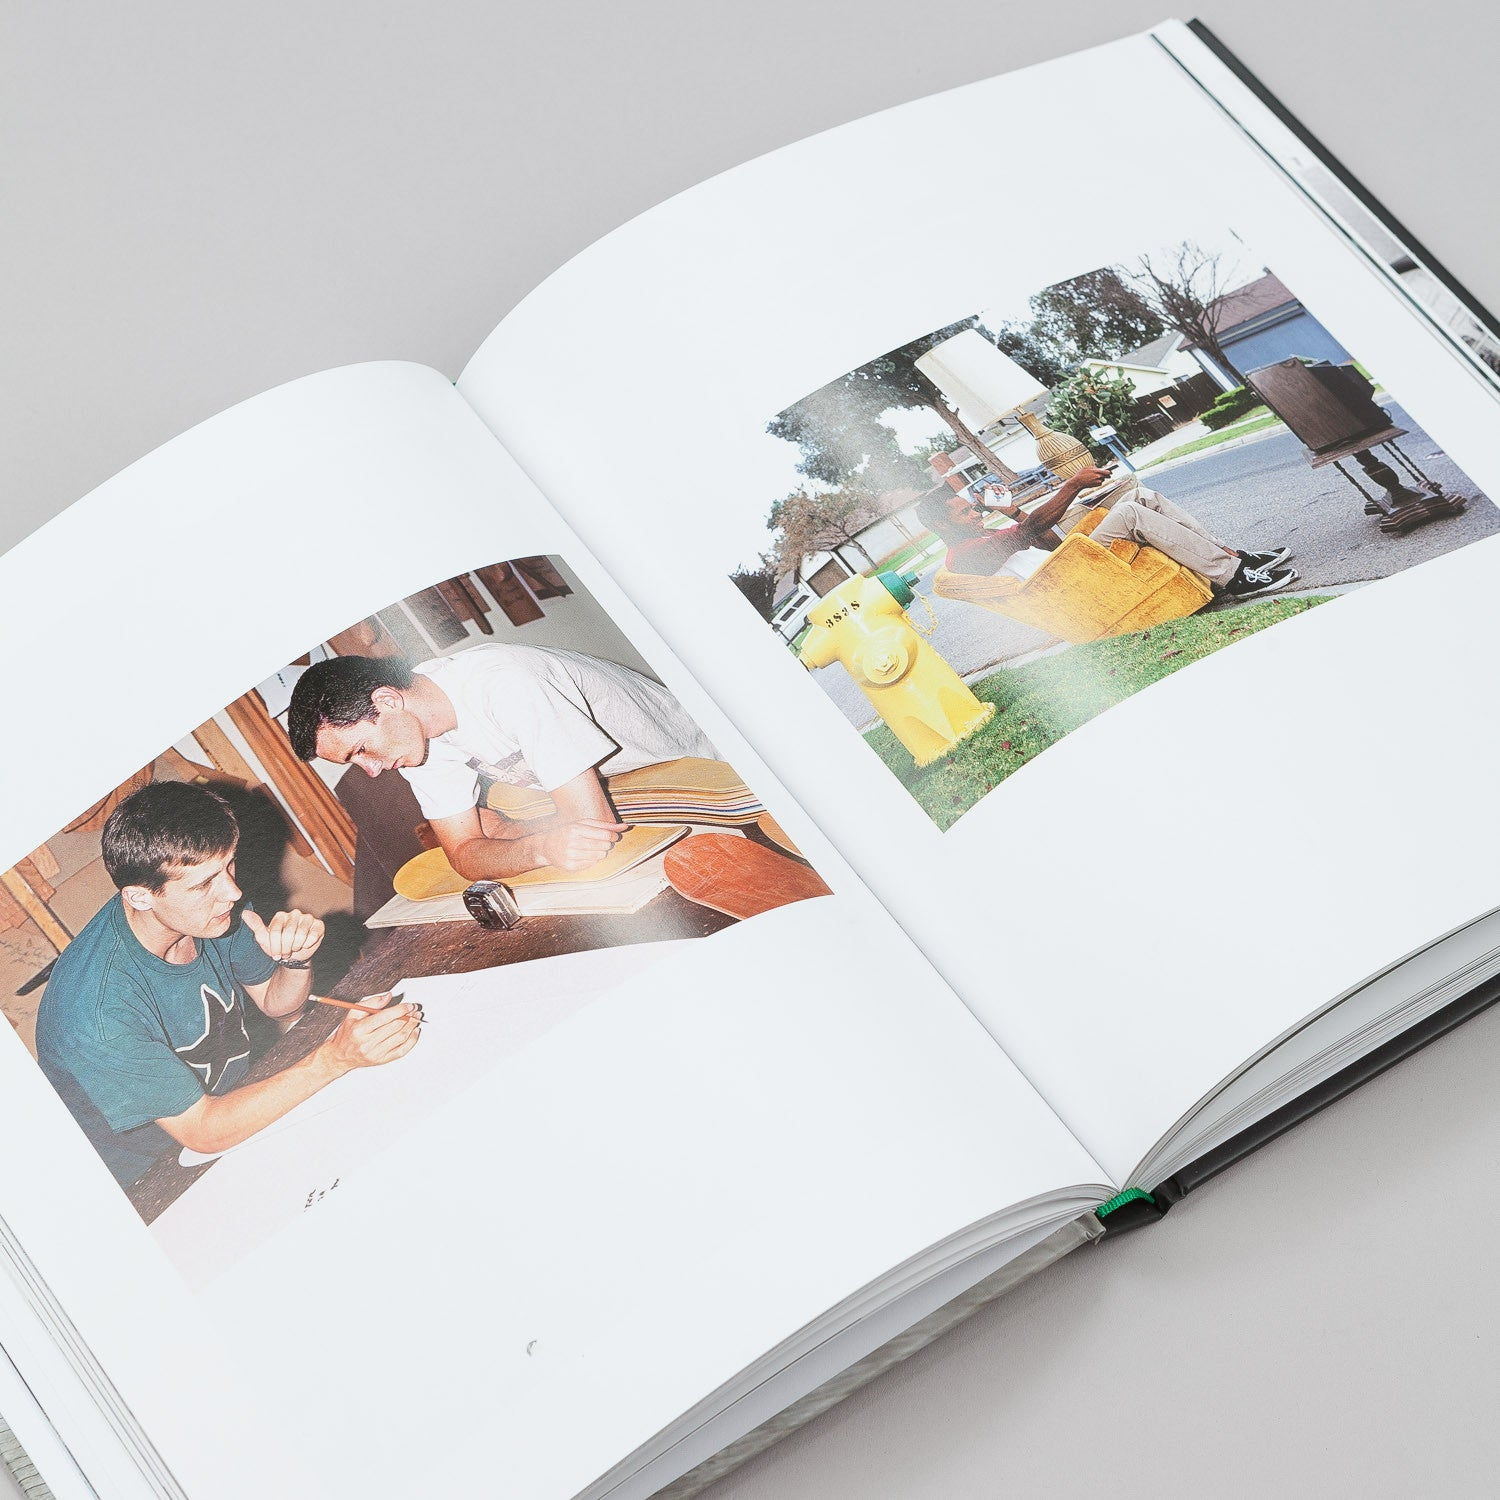 20 Plus:The Photography of Jody Morris - Book